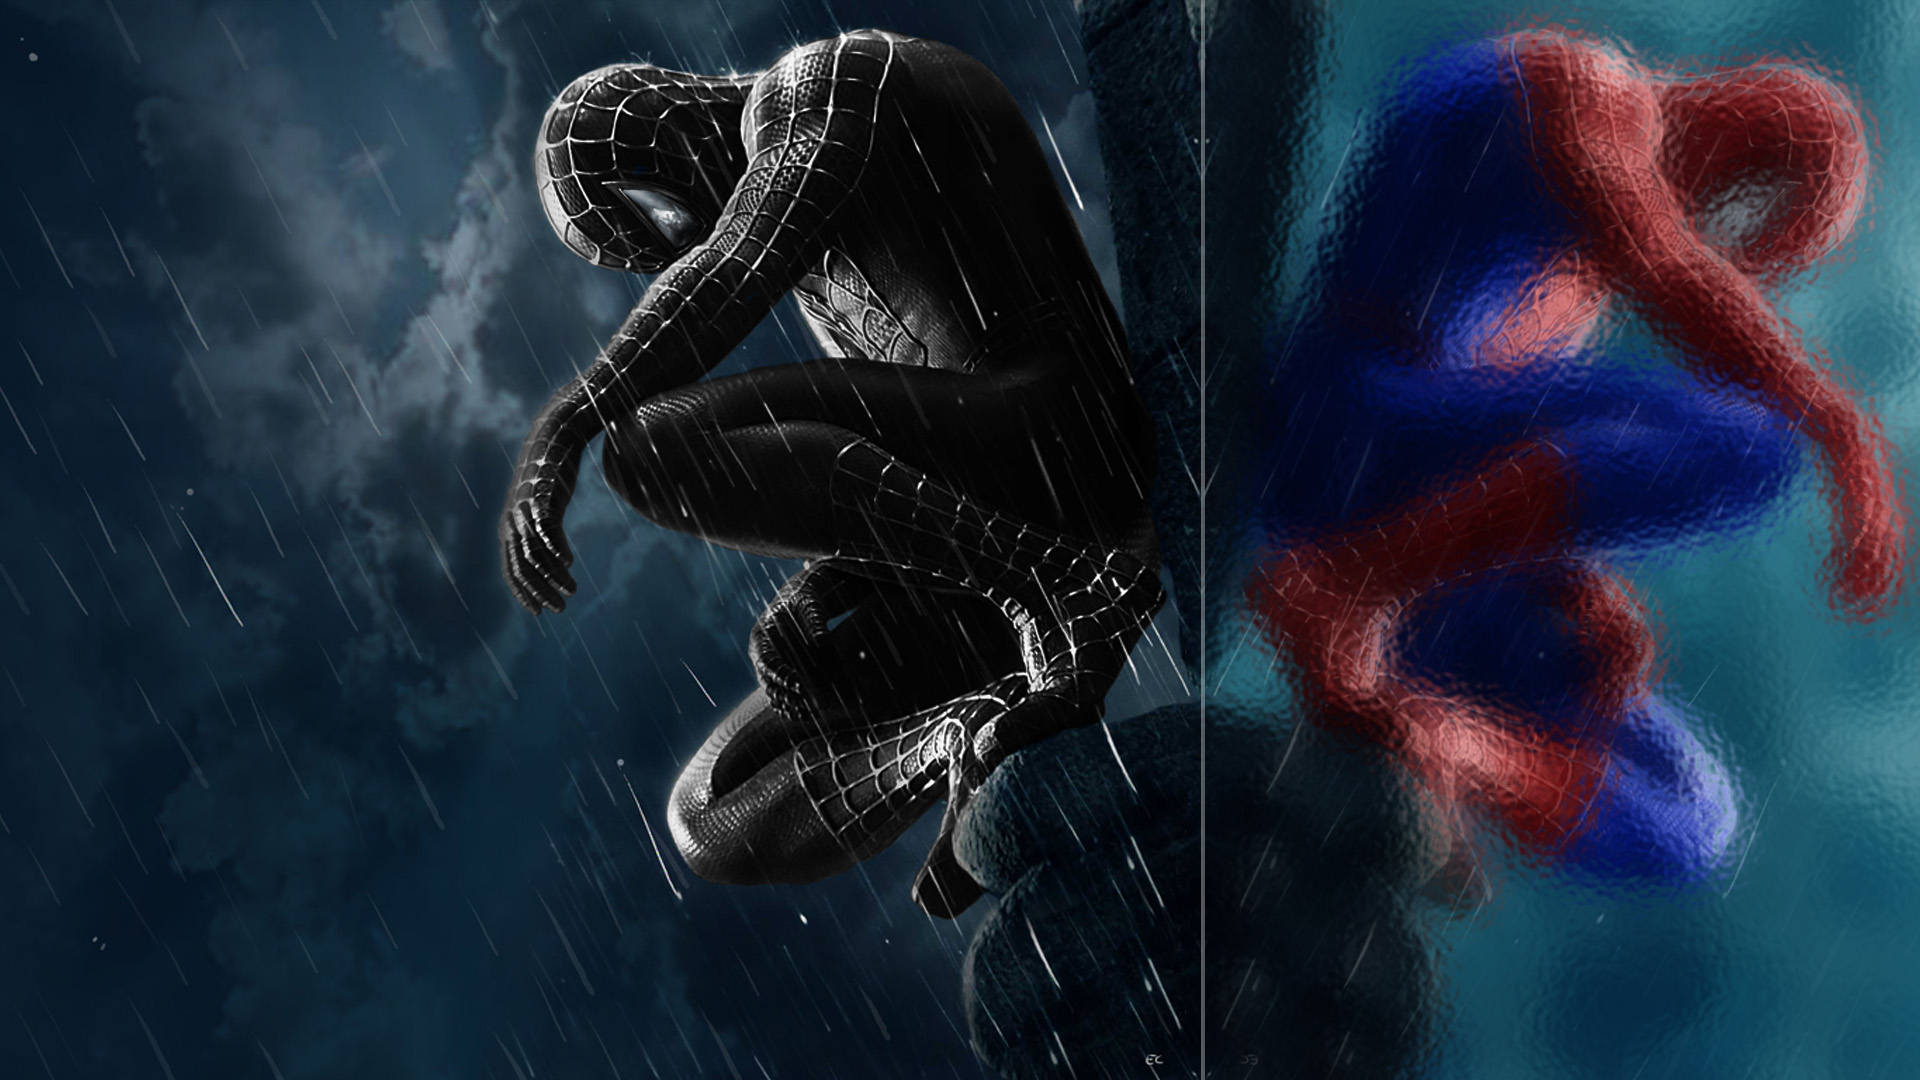 Spiderman 3 wallpaper - 902161